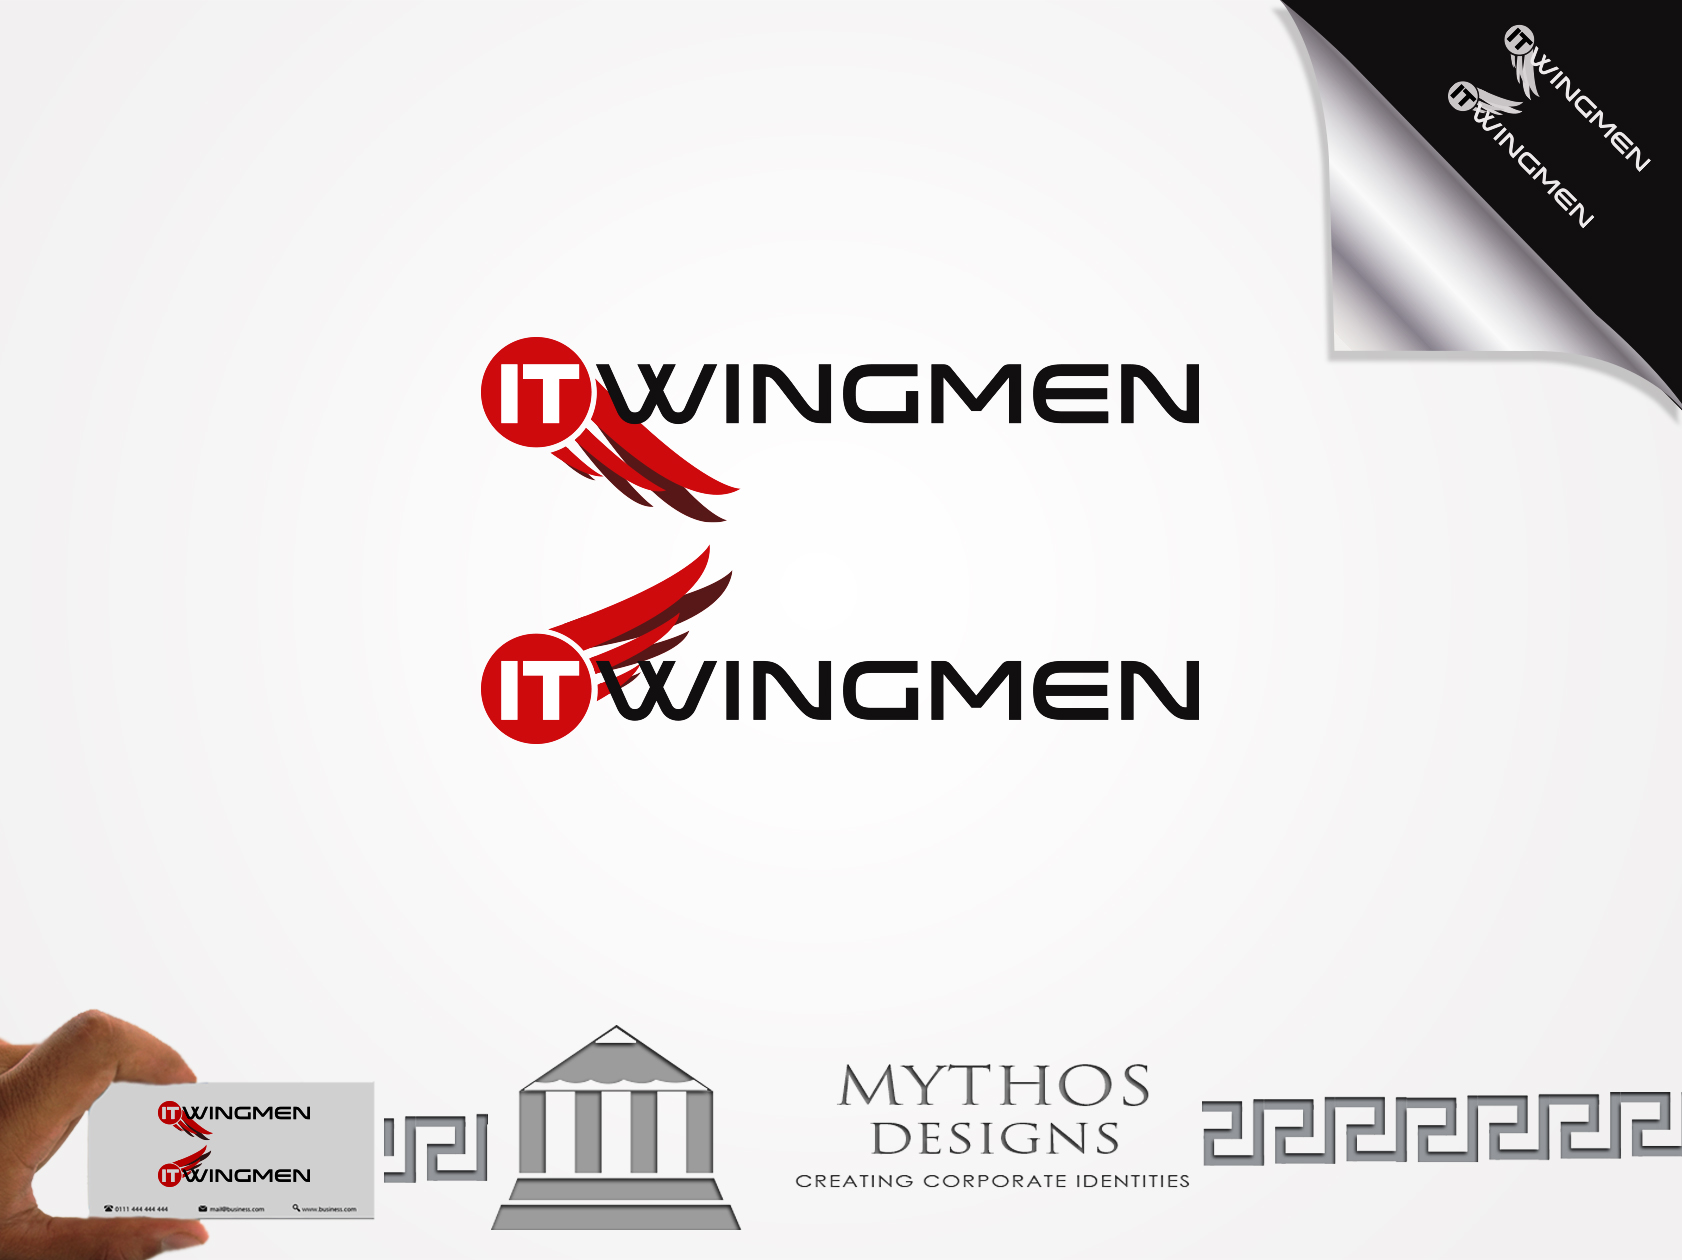 Logo Design by Mythos Designs - Entry No. 99 in the Logo Design Contest New Logo Design for IT Wingmen.